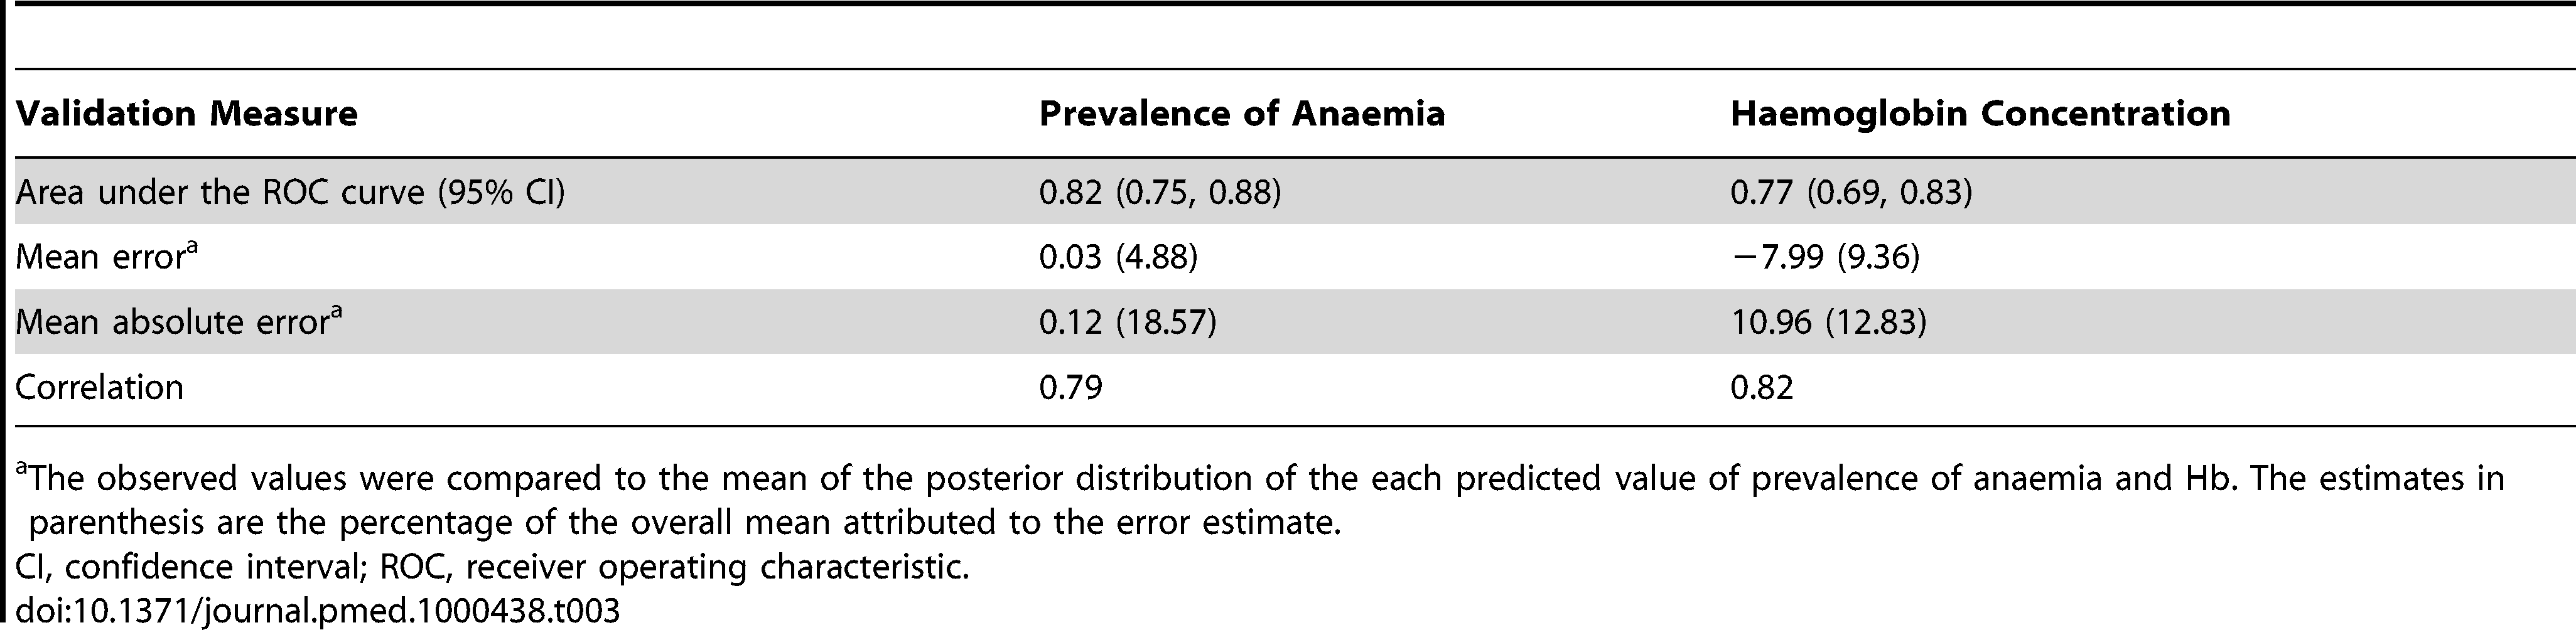 Summary of validation statistics for predictive models of anaemia prevalence and haemoglobin concentration in Burkina Faso, Ghana, and Mali.